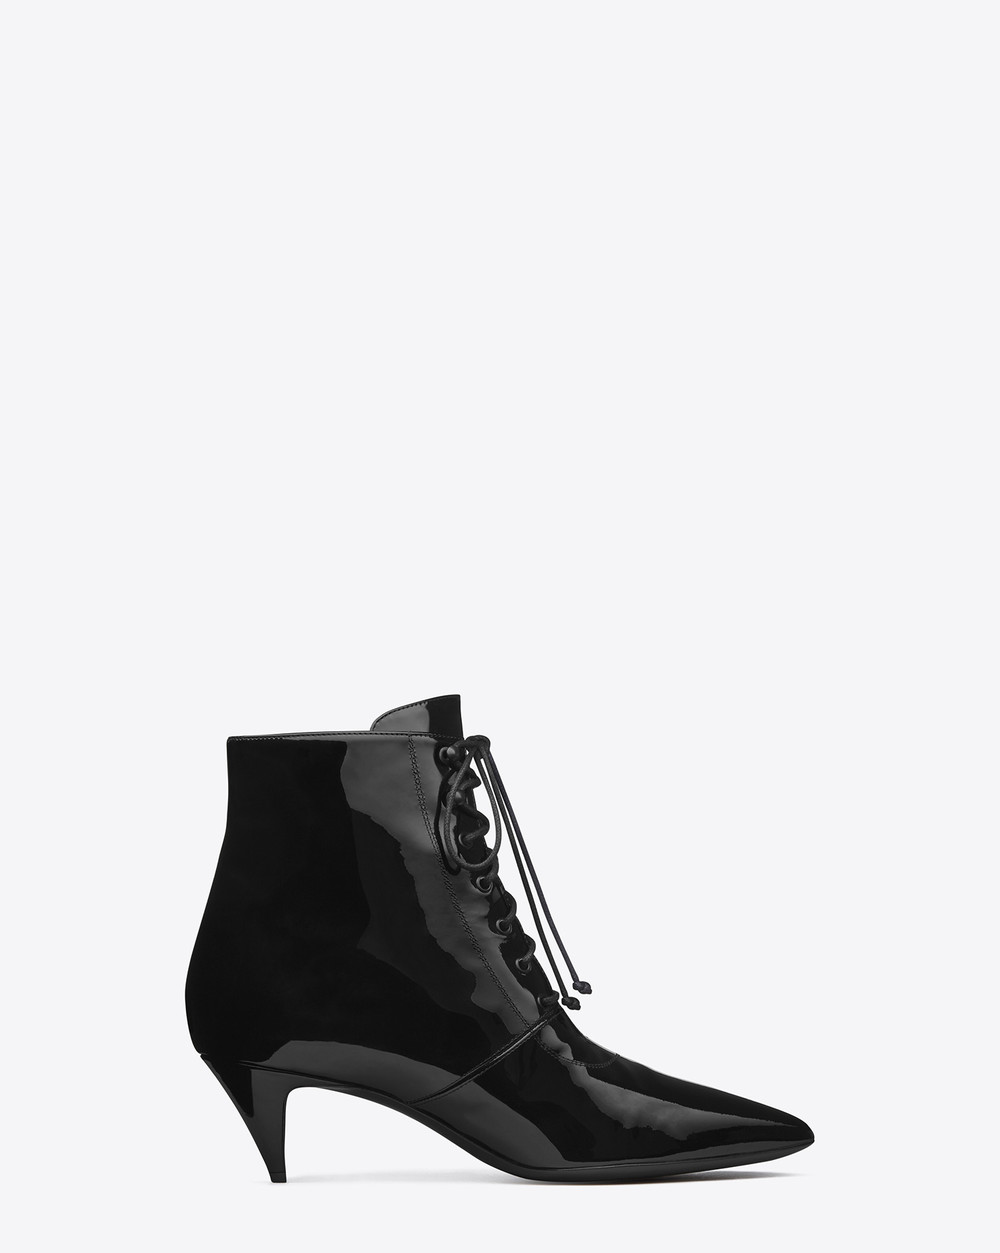 Saint_Laurent_Cat_Boots 01.jpg